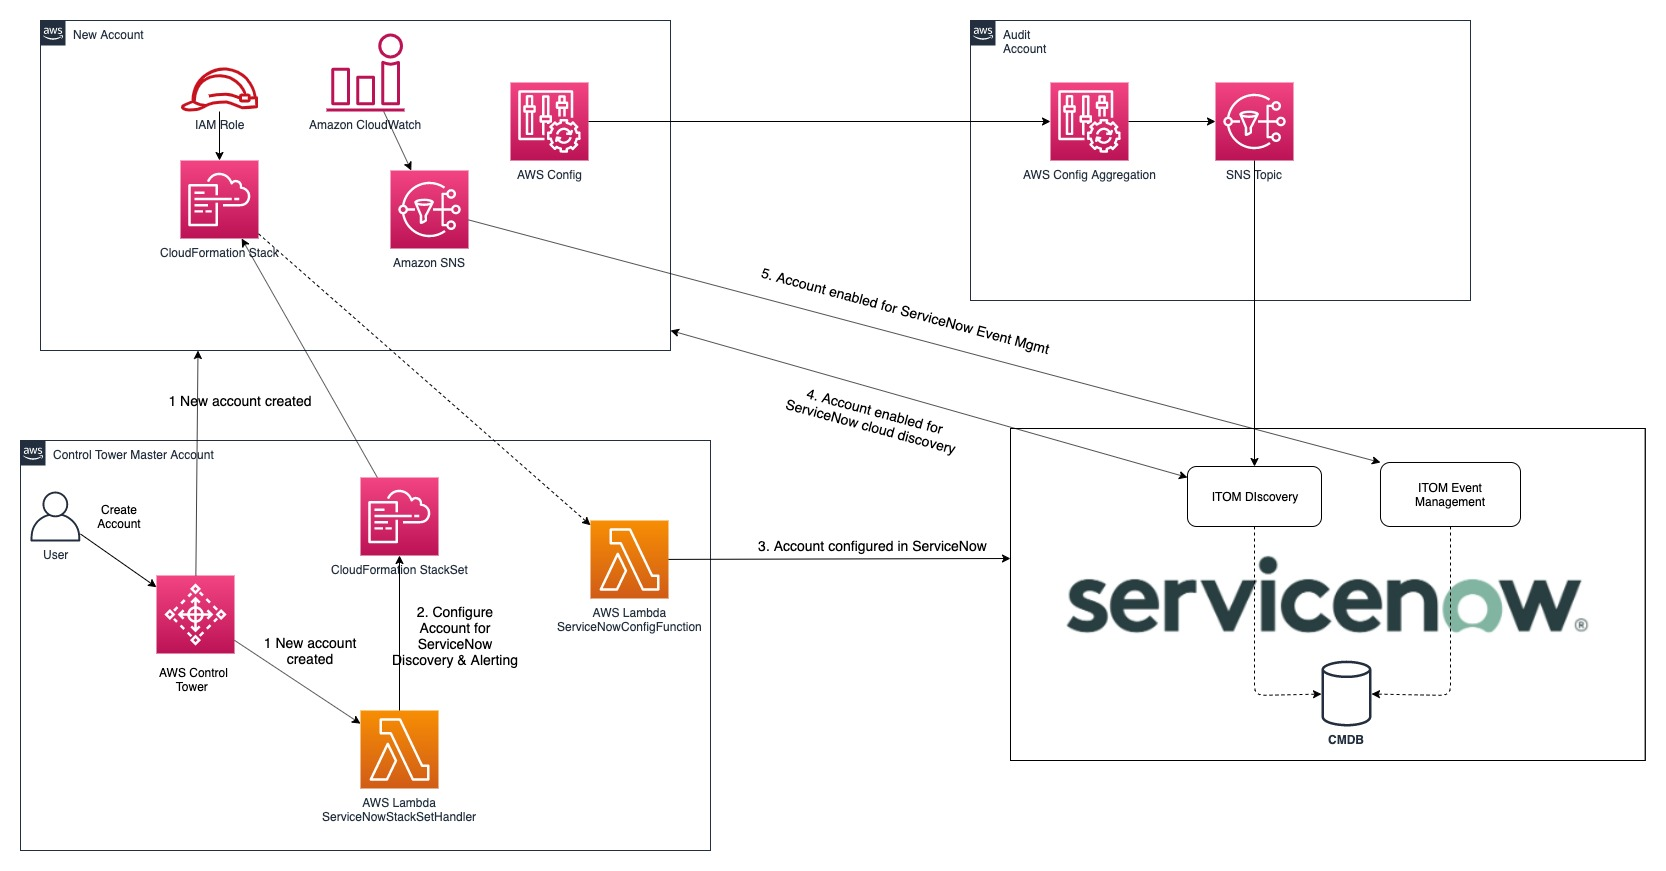 Diagram shows interactions after a new account is created (step 1), the account is configured in ServiceNow (steps 2 and 3), the account is enabled for ServiceNow Discovery and ServiceNow EventManagement (steps 4 and 5).